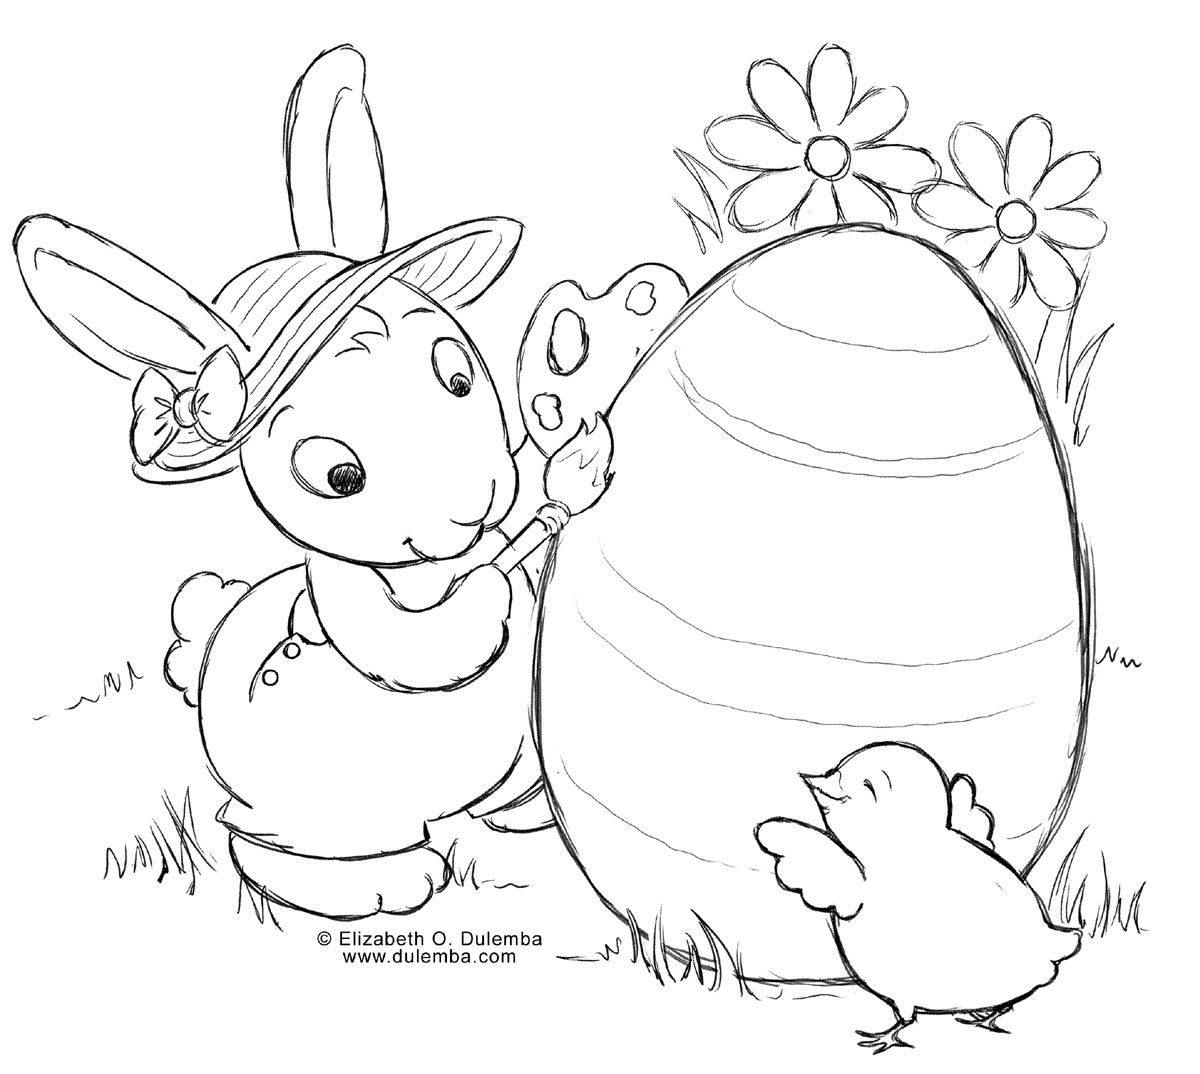 Free easter coloring pages for toddlers - Check Out Some Best Printable Easter Bunny And Easter Bunny Printables Happy Easter Bunny Printables Easter Bunny Coloring Pages And Easter Bunny Free